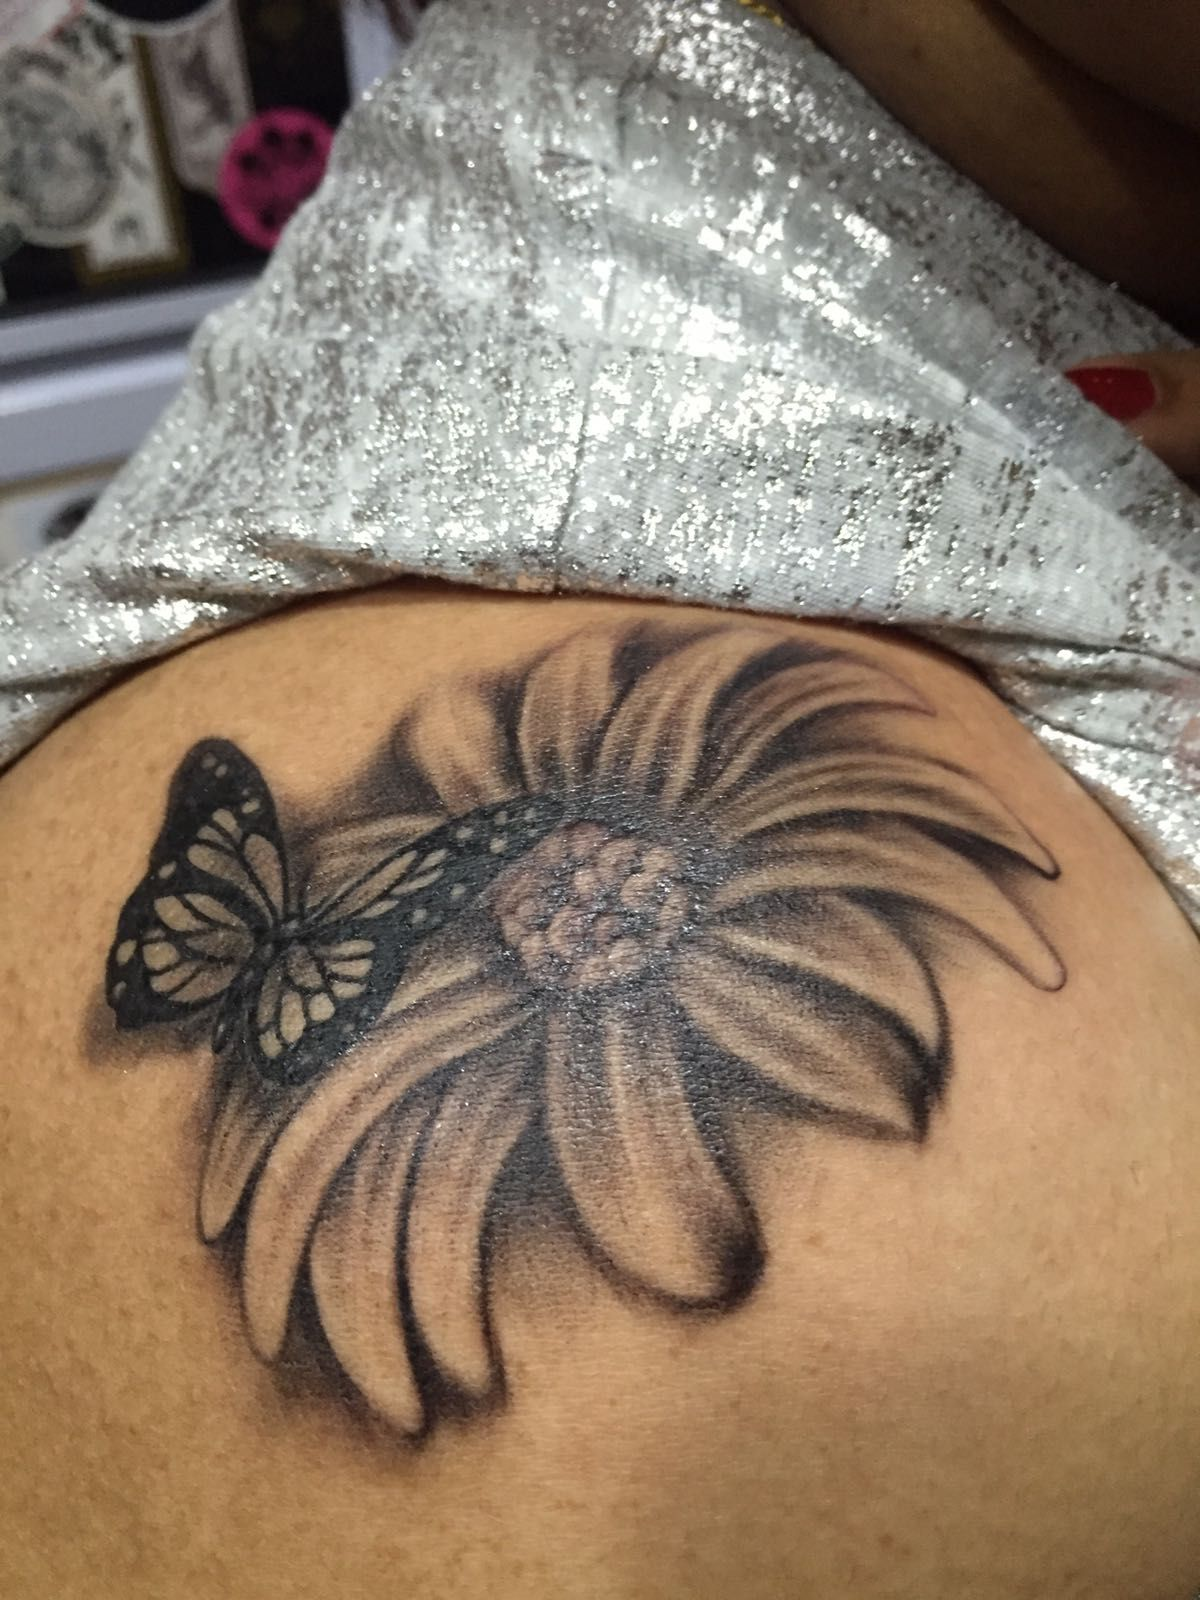 d6141b818 Semi-realistic common daisy with monarch butterfly tattoo.Black and  grey.For further inquiries kindly email Yus Toni. Please click on the  picture for a link ...